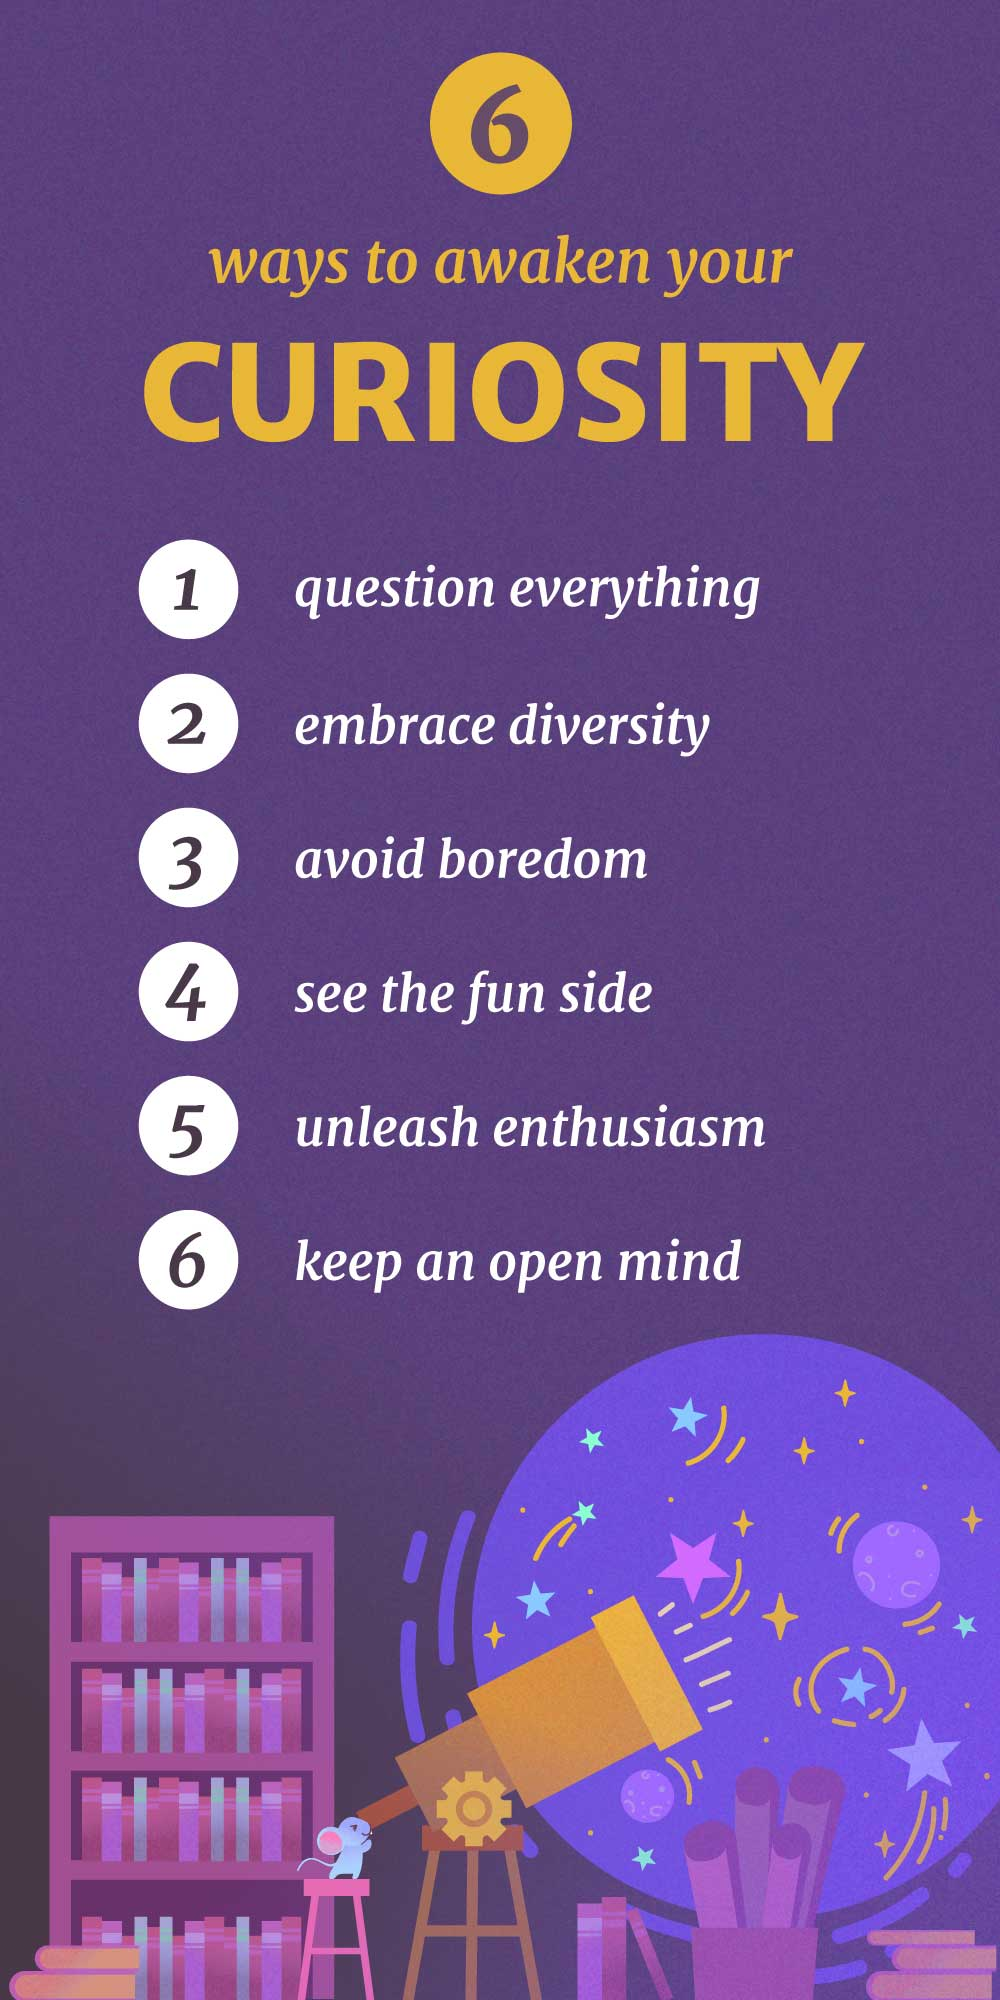 6 Ways to Awaken Your Curiosity